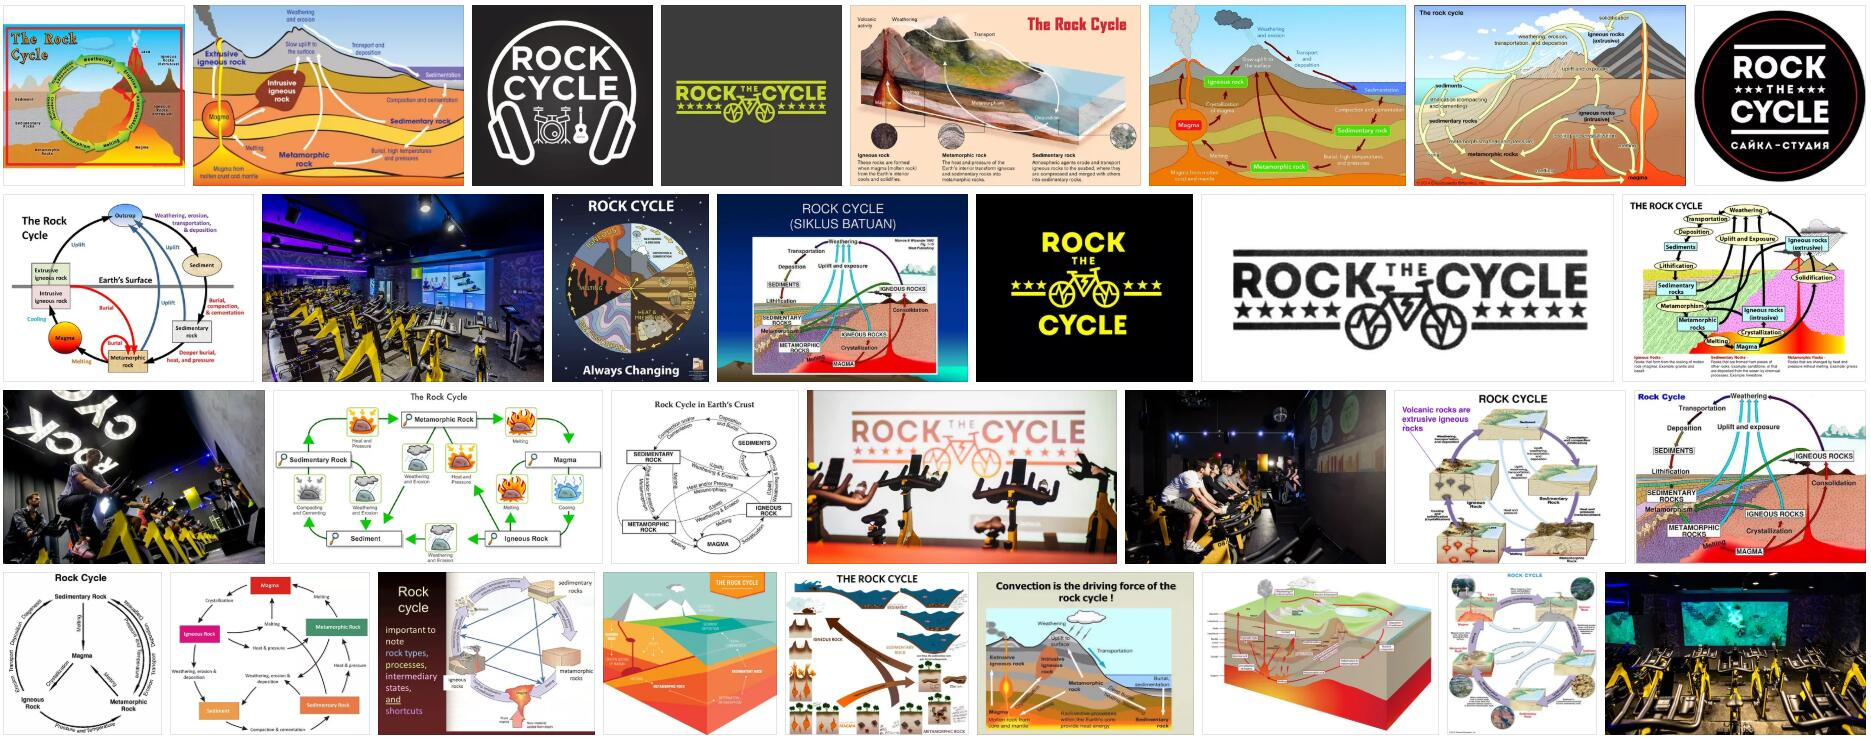 What is Rock Cycle